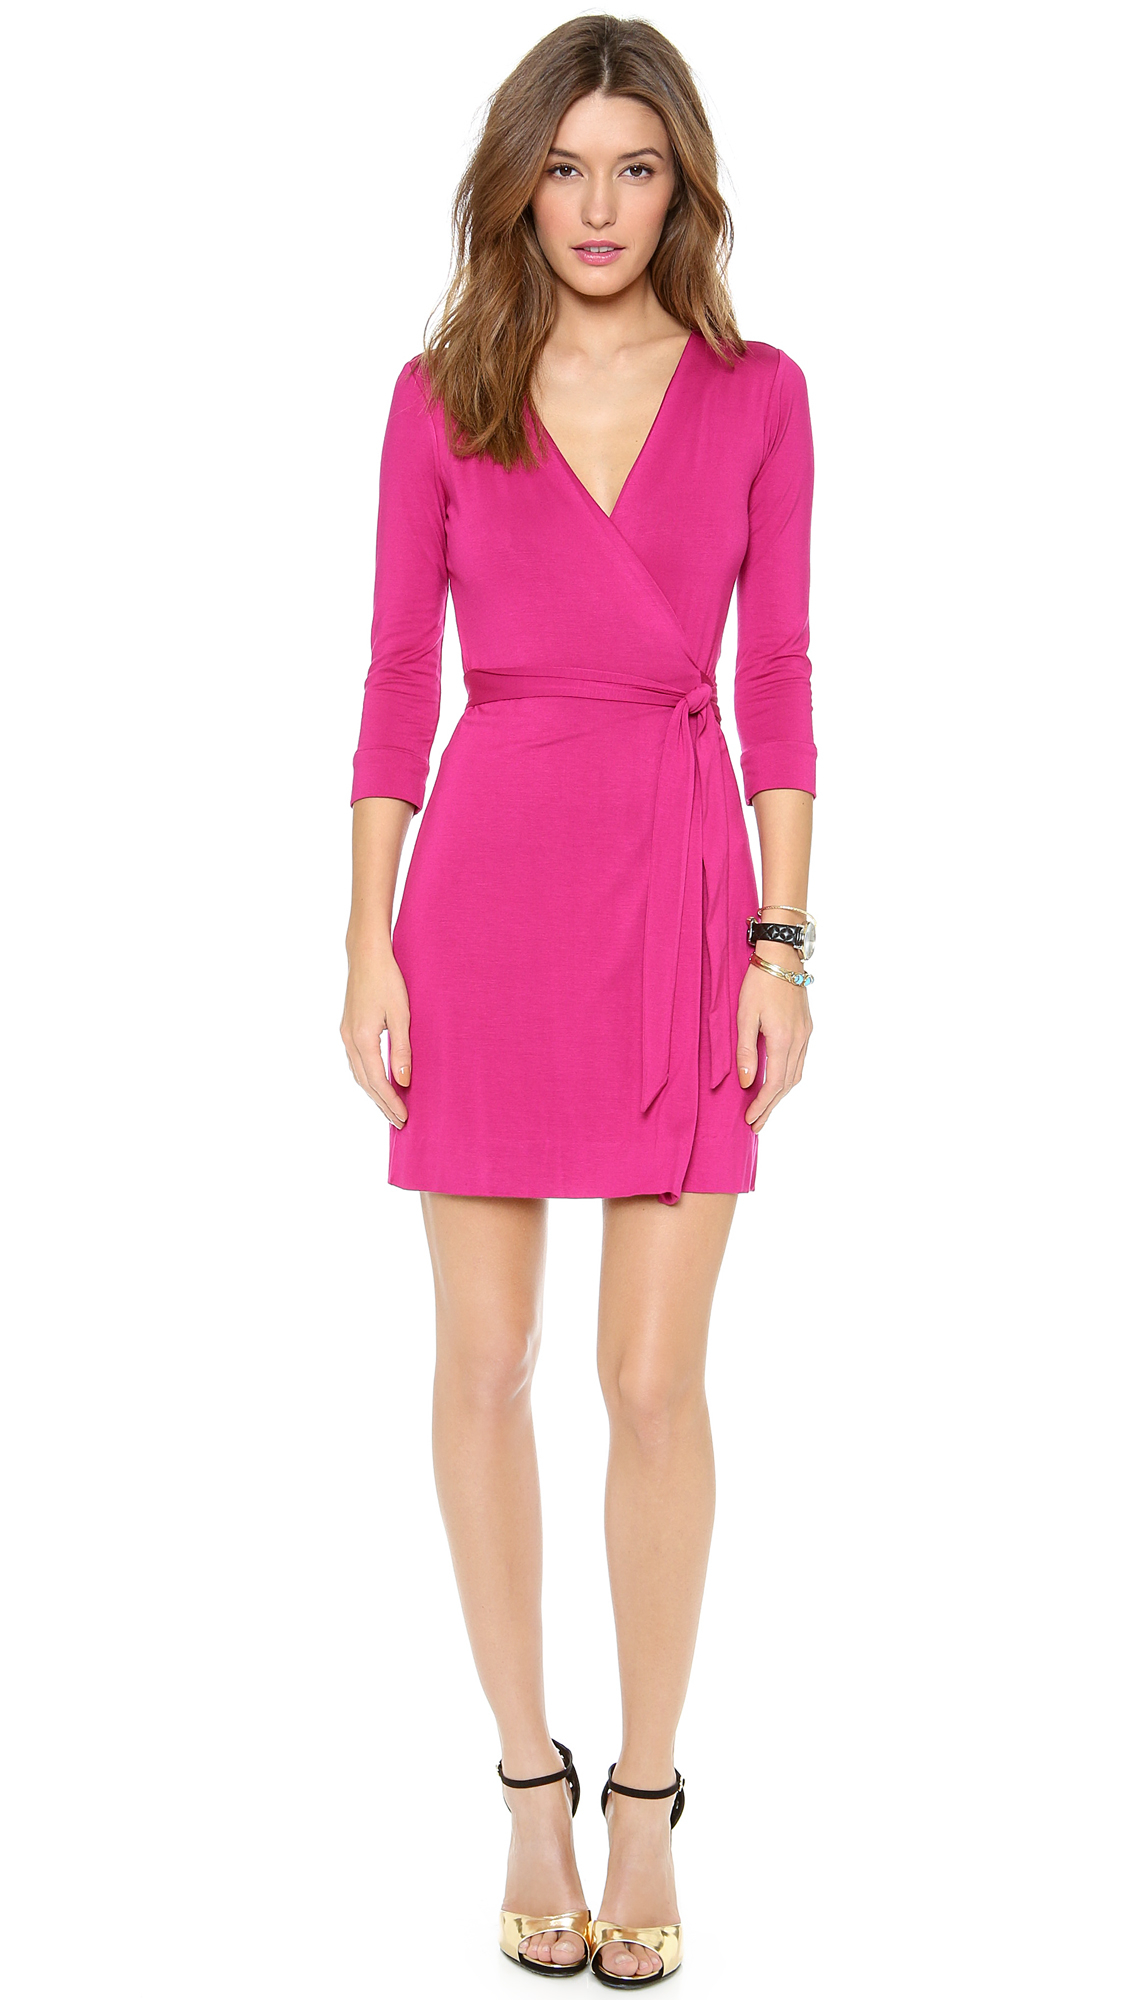 Diane von furstenberg new julian mini wrap dress in pink for Diane von furstenberg clothes